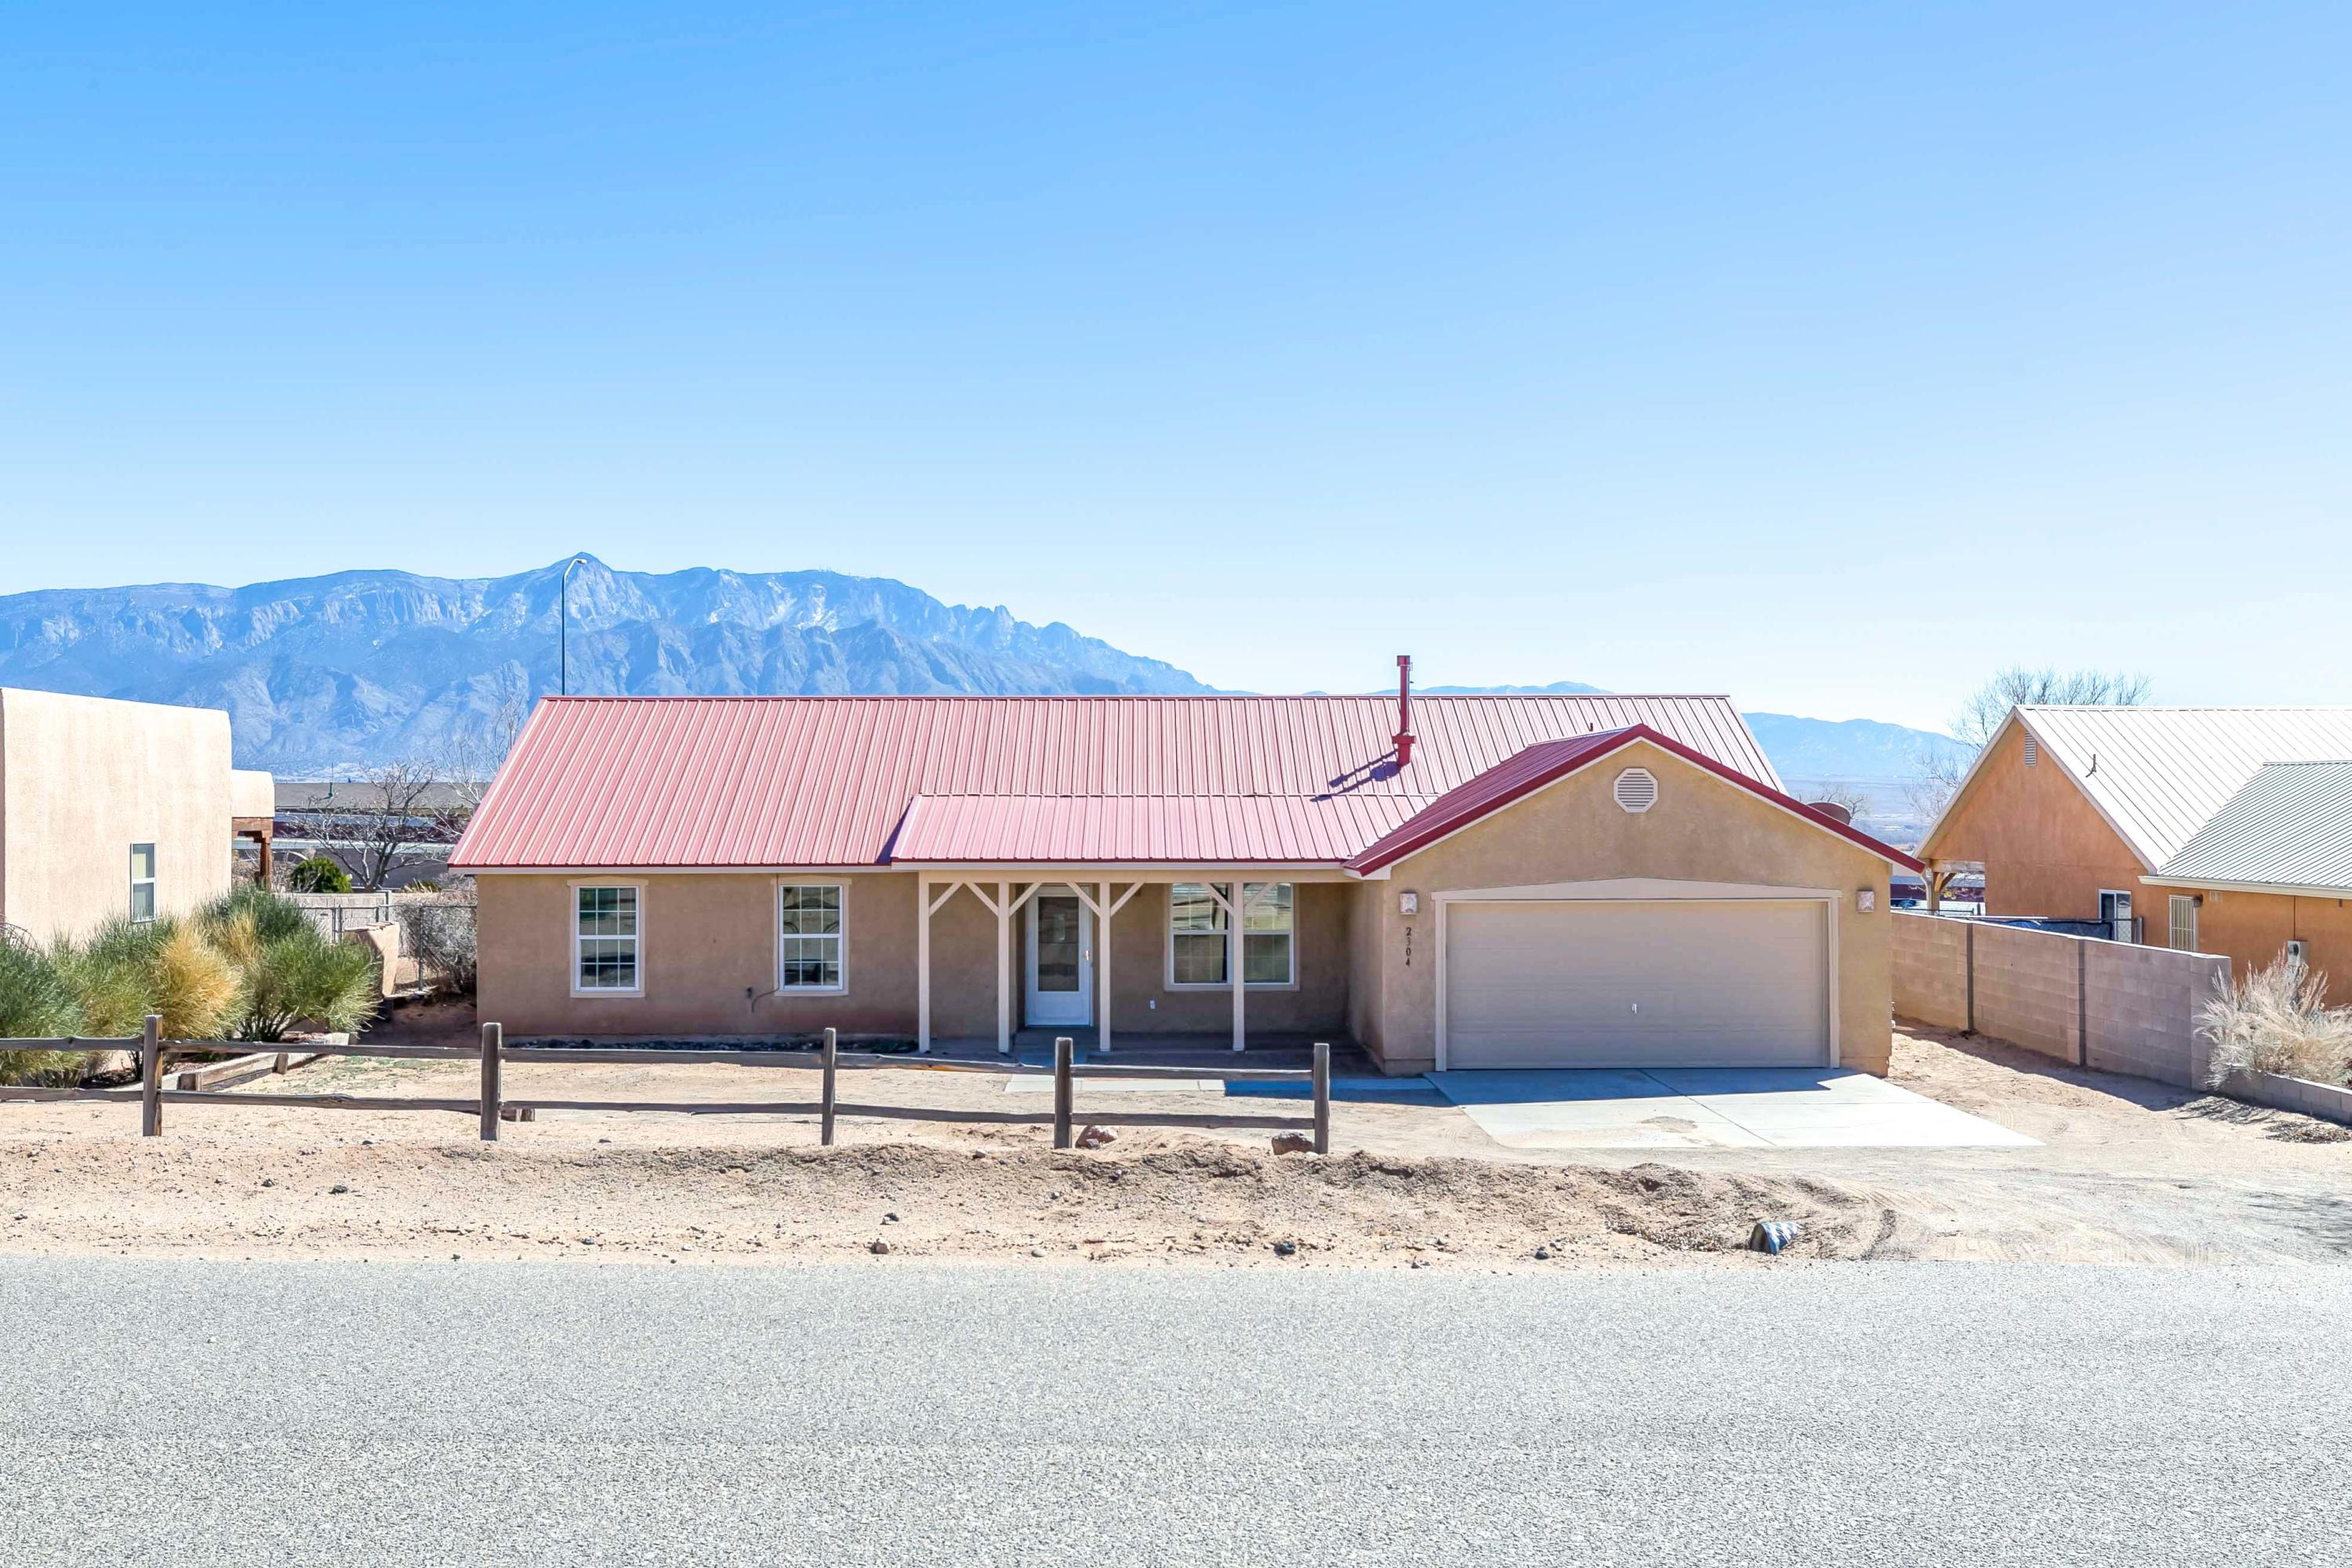 Cozy three bed, two bath, with mountain views.  This open floor plan features lots of natural light, intricate detail, and a cathedral ceiling.  New flooring and fresh paint throughout.  This home is a must see!